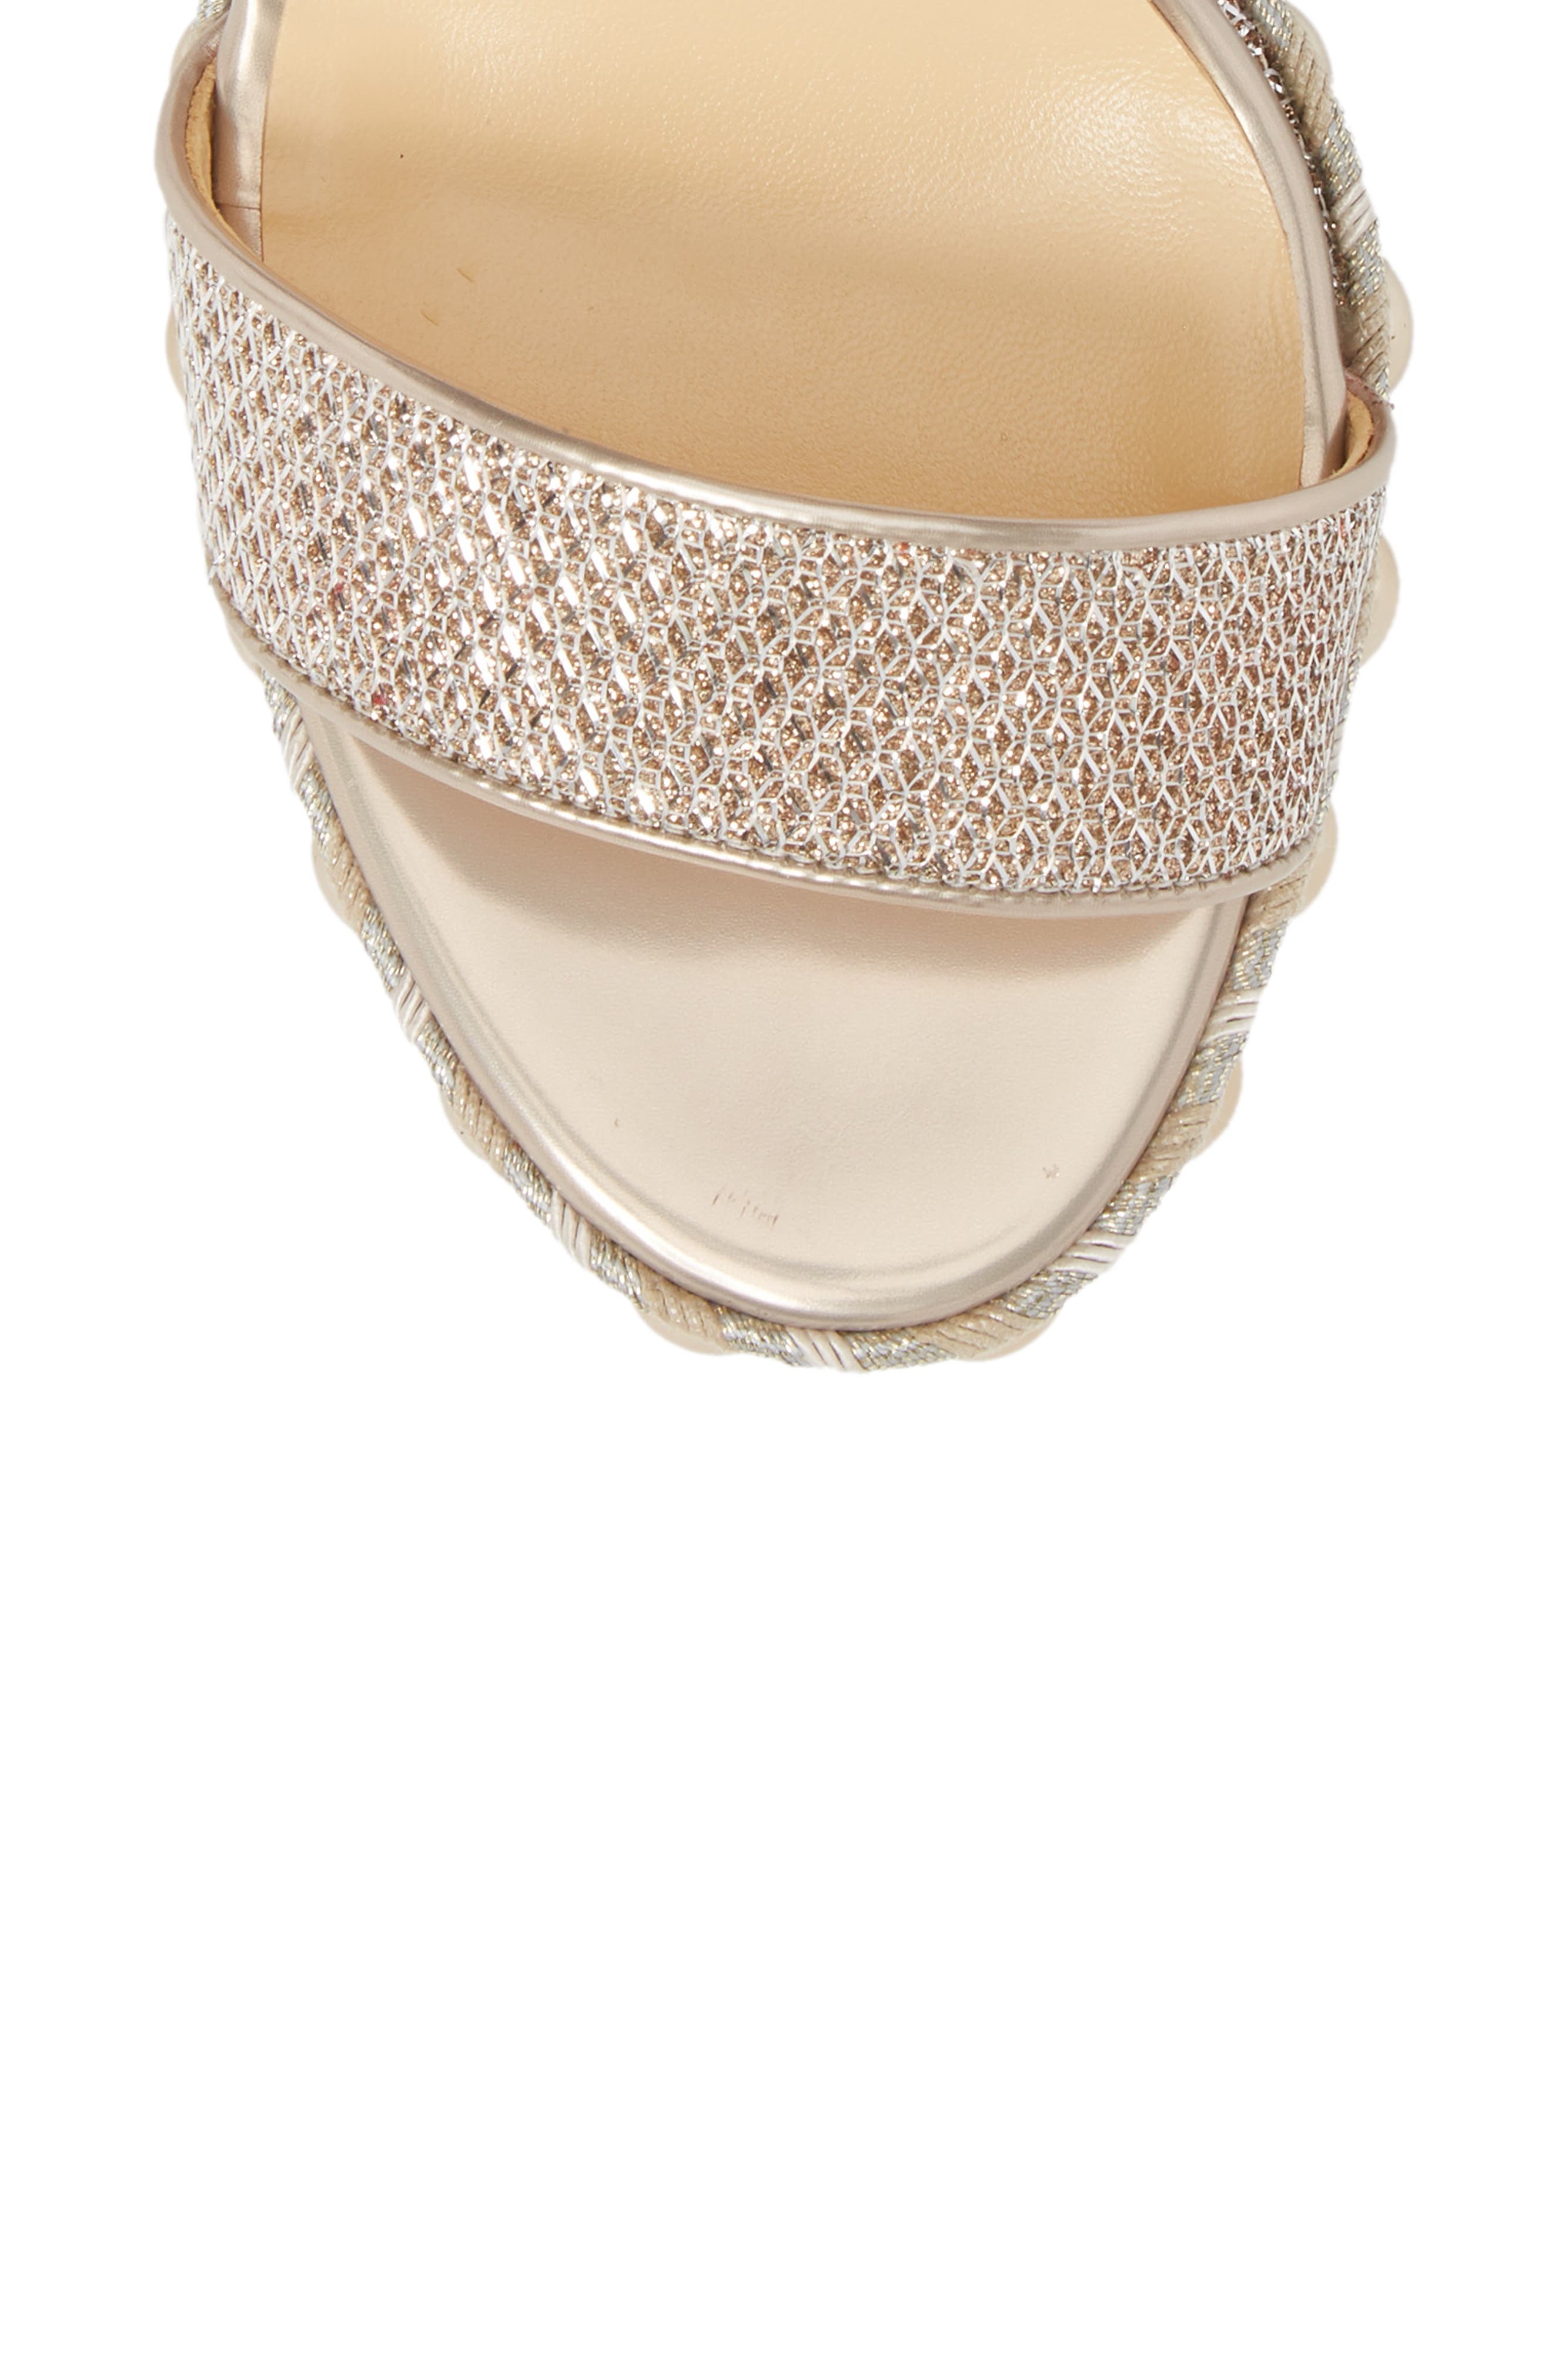 Chocazeppa Studded Wedge,                             Alternate thumbnail 5, color,                             COLOMBE